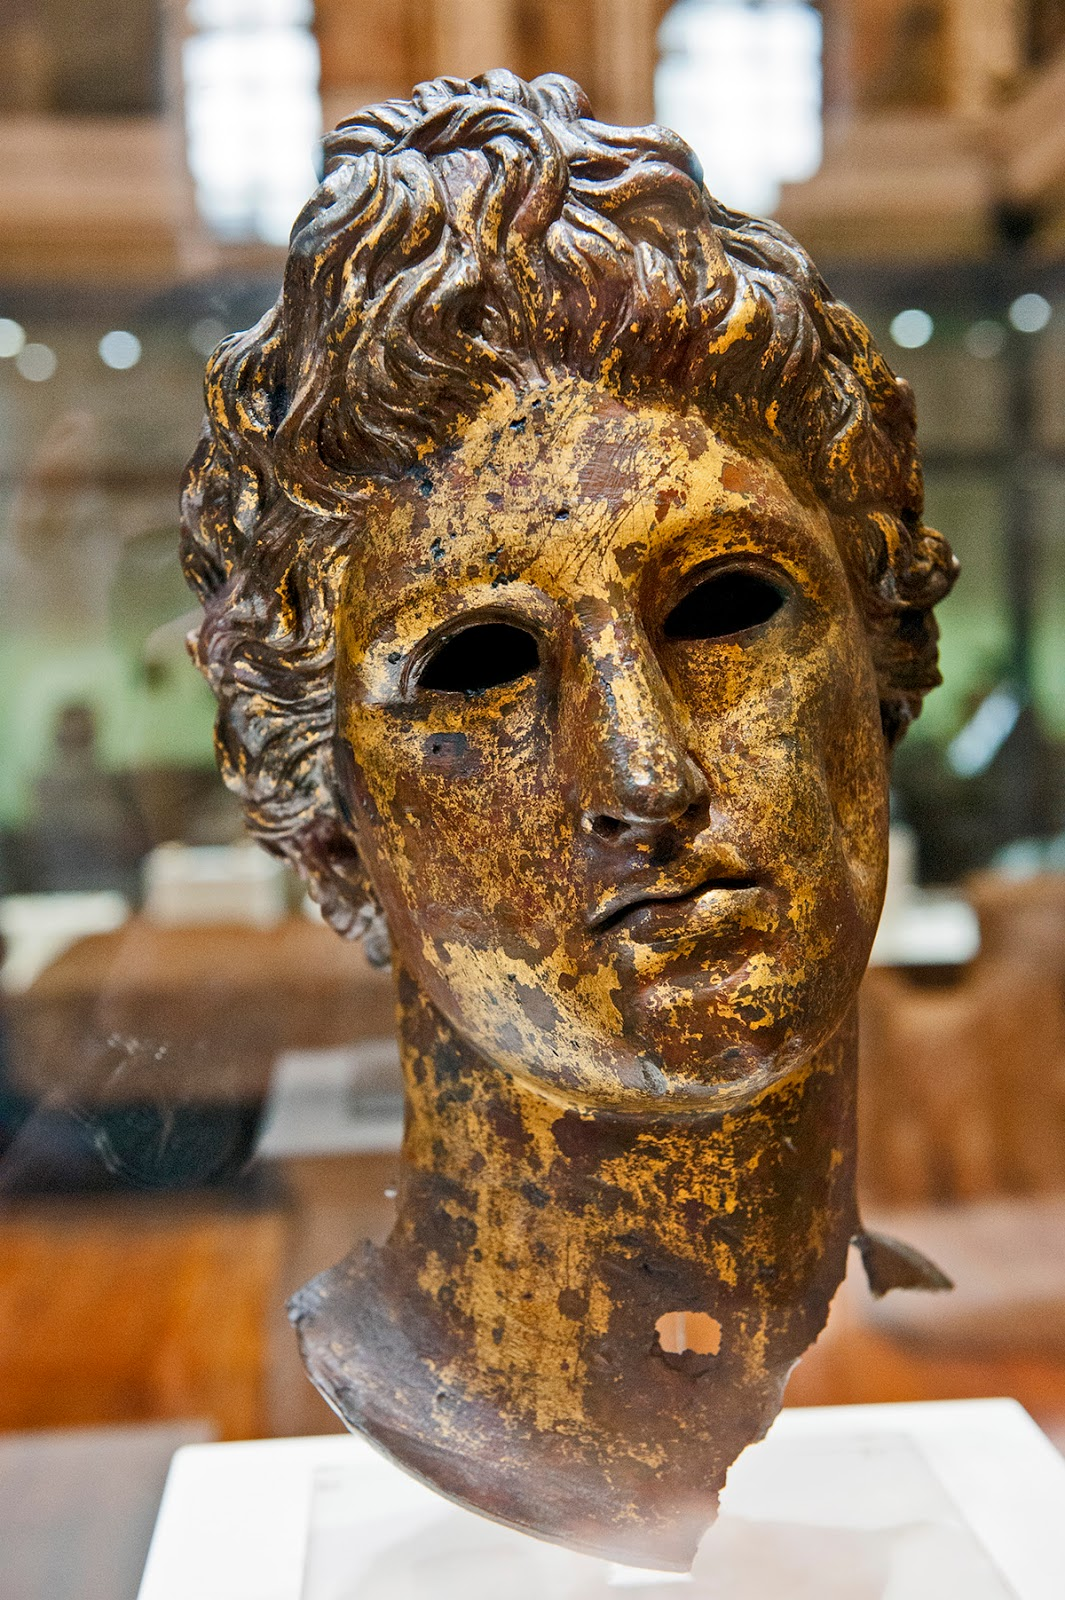 A Thracian mask in Sofia, Bulgaria